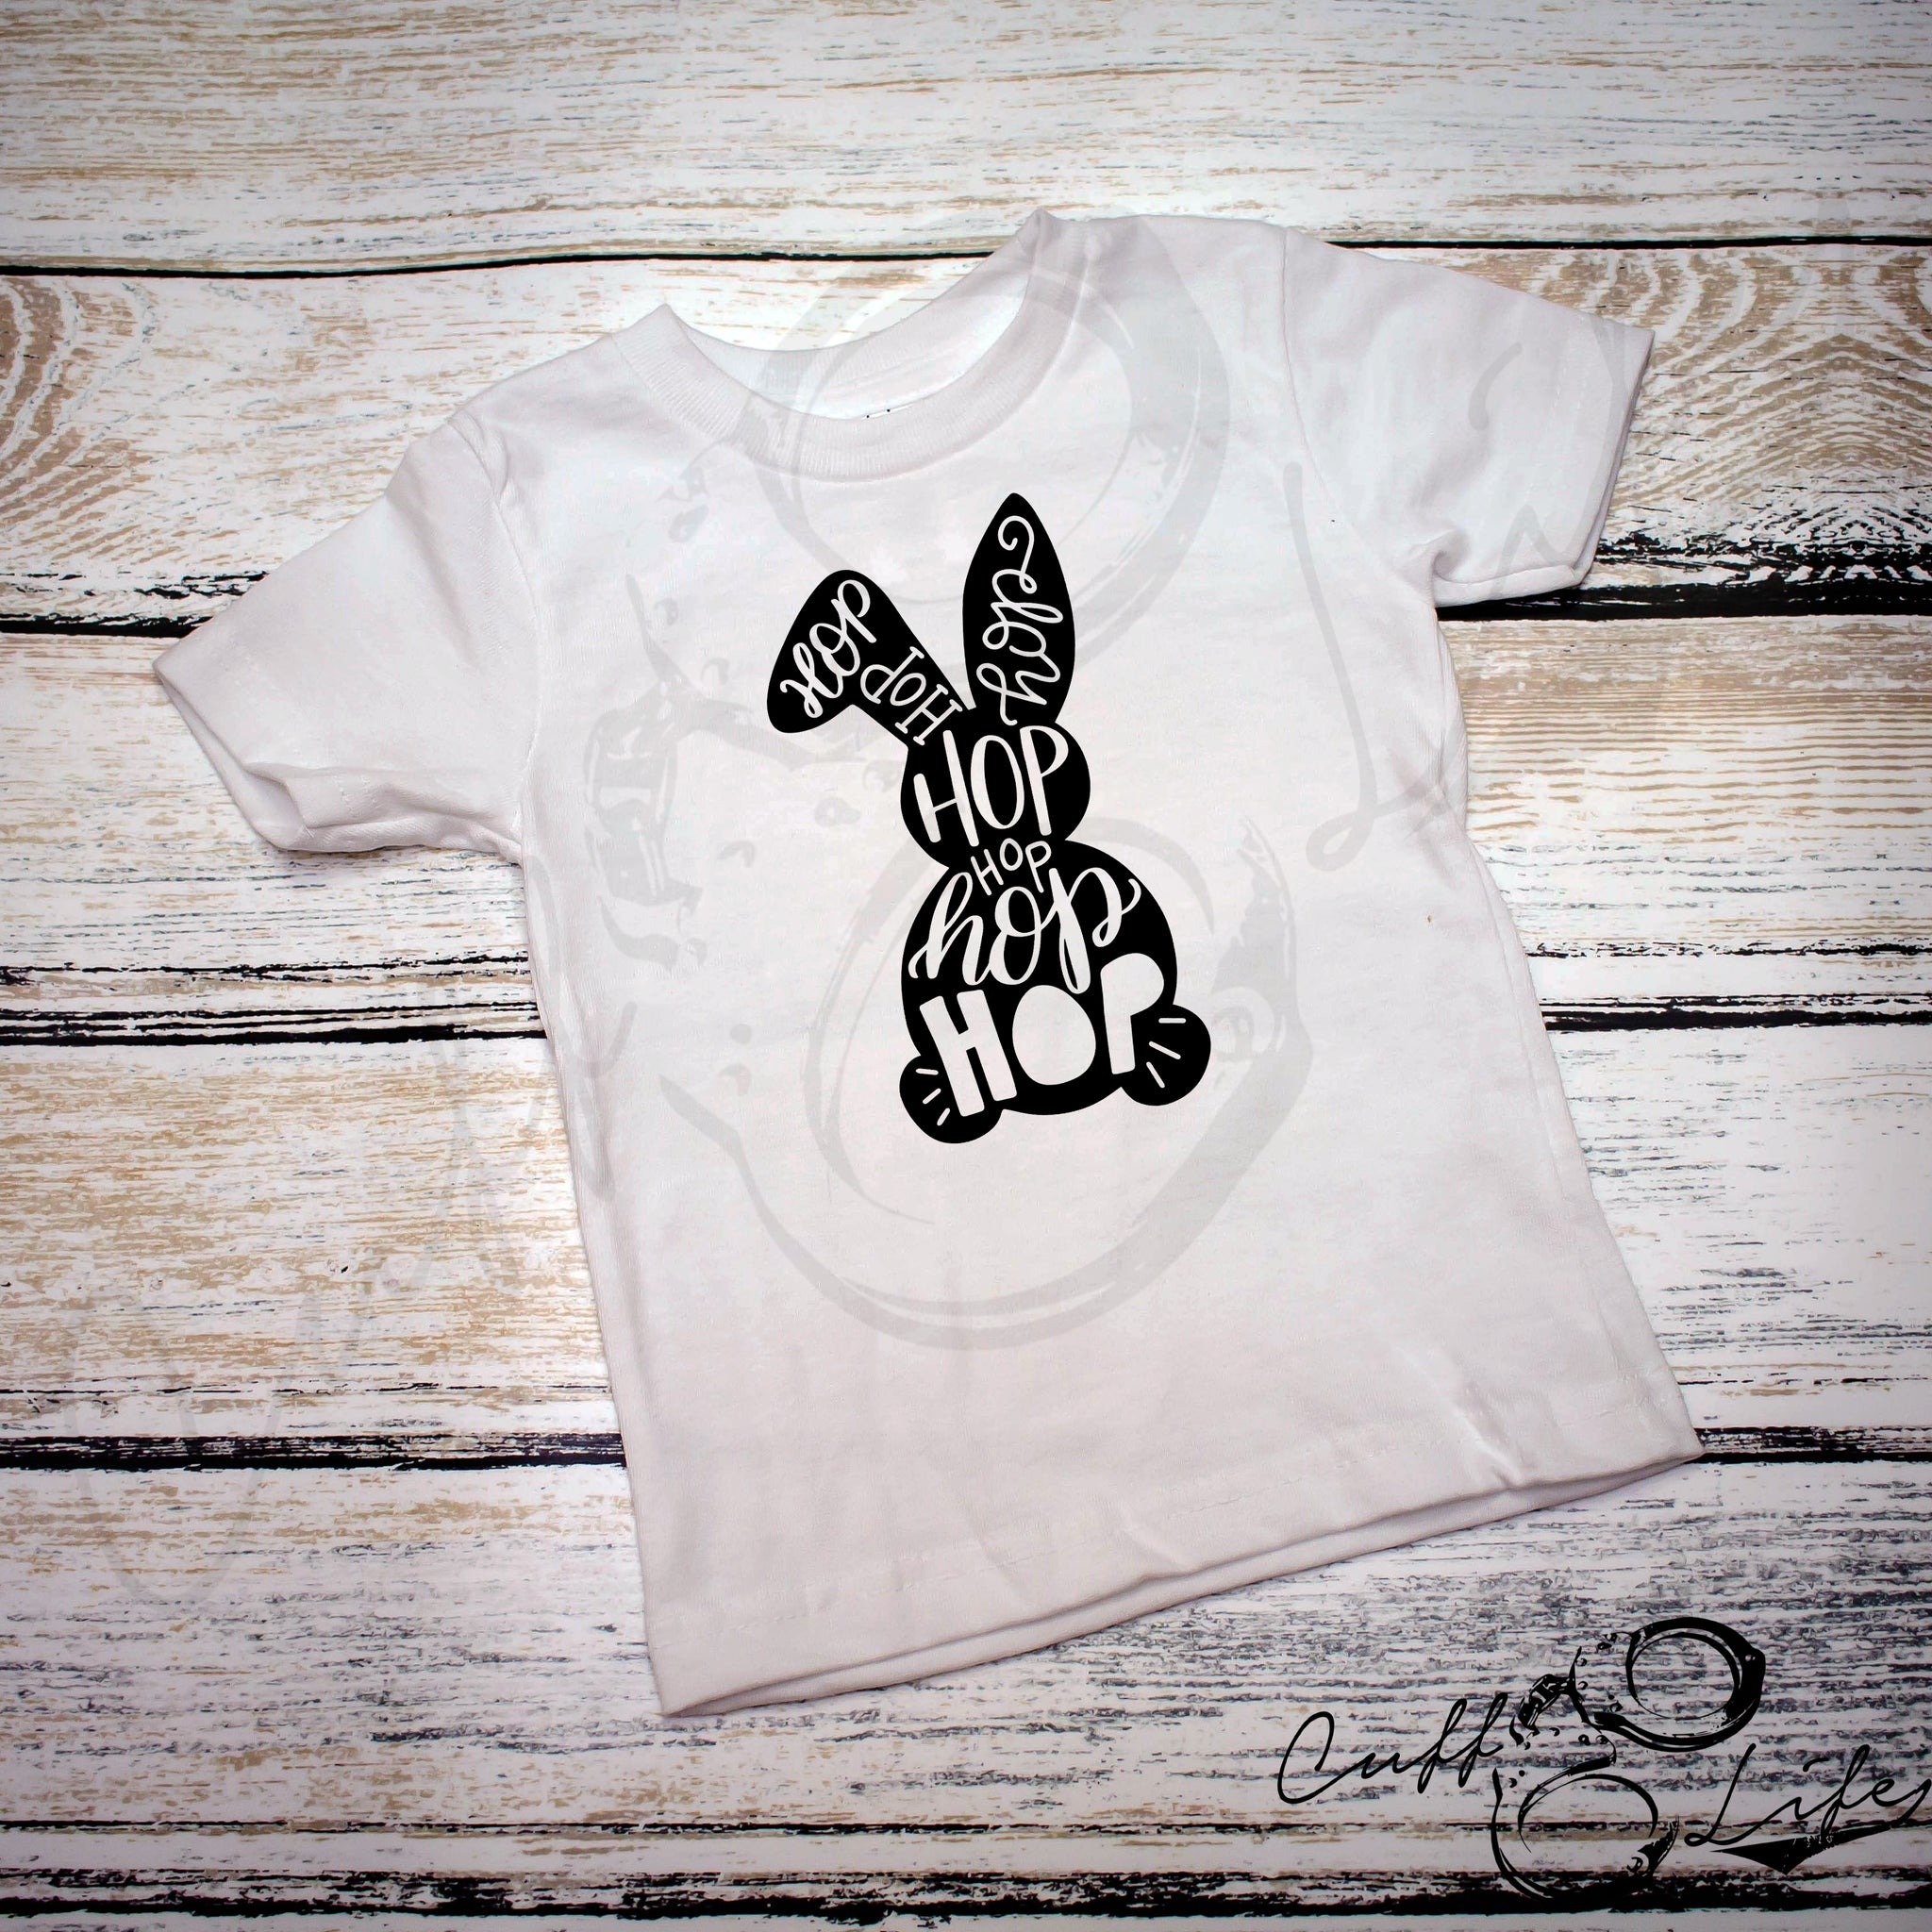 Hip Hop Bunny Rabbit - Toddler/Youth T-Shirt